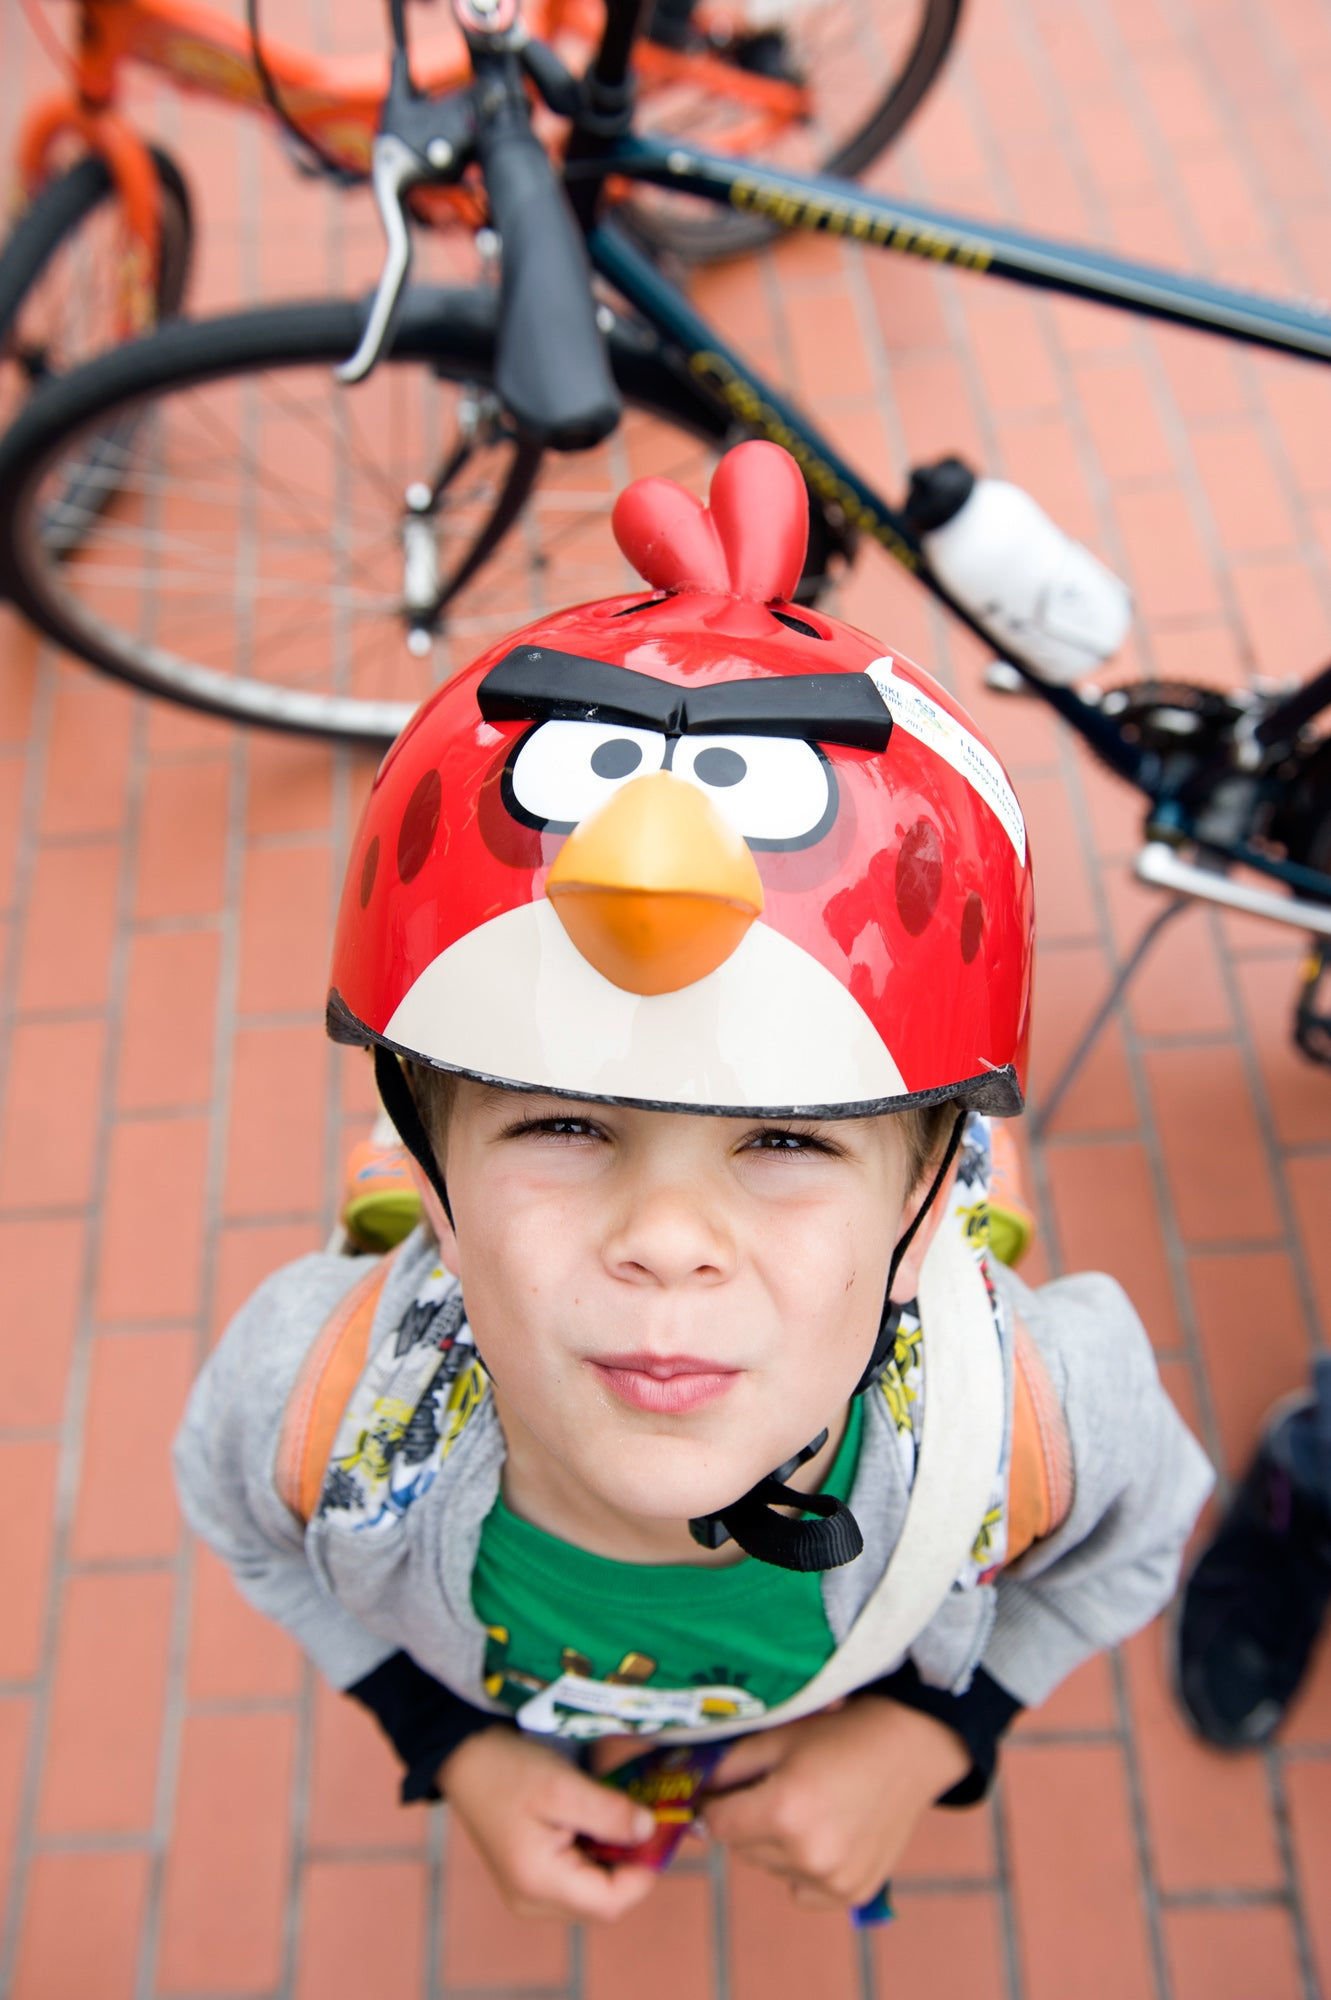 Myles Viera of Berkeley gives his best Angry Birds expression, with a helmet to match.